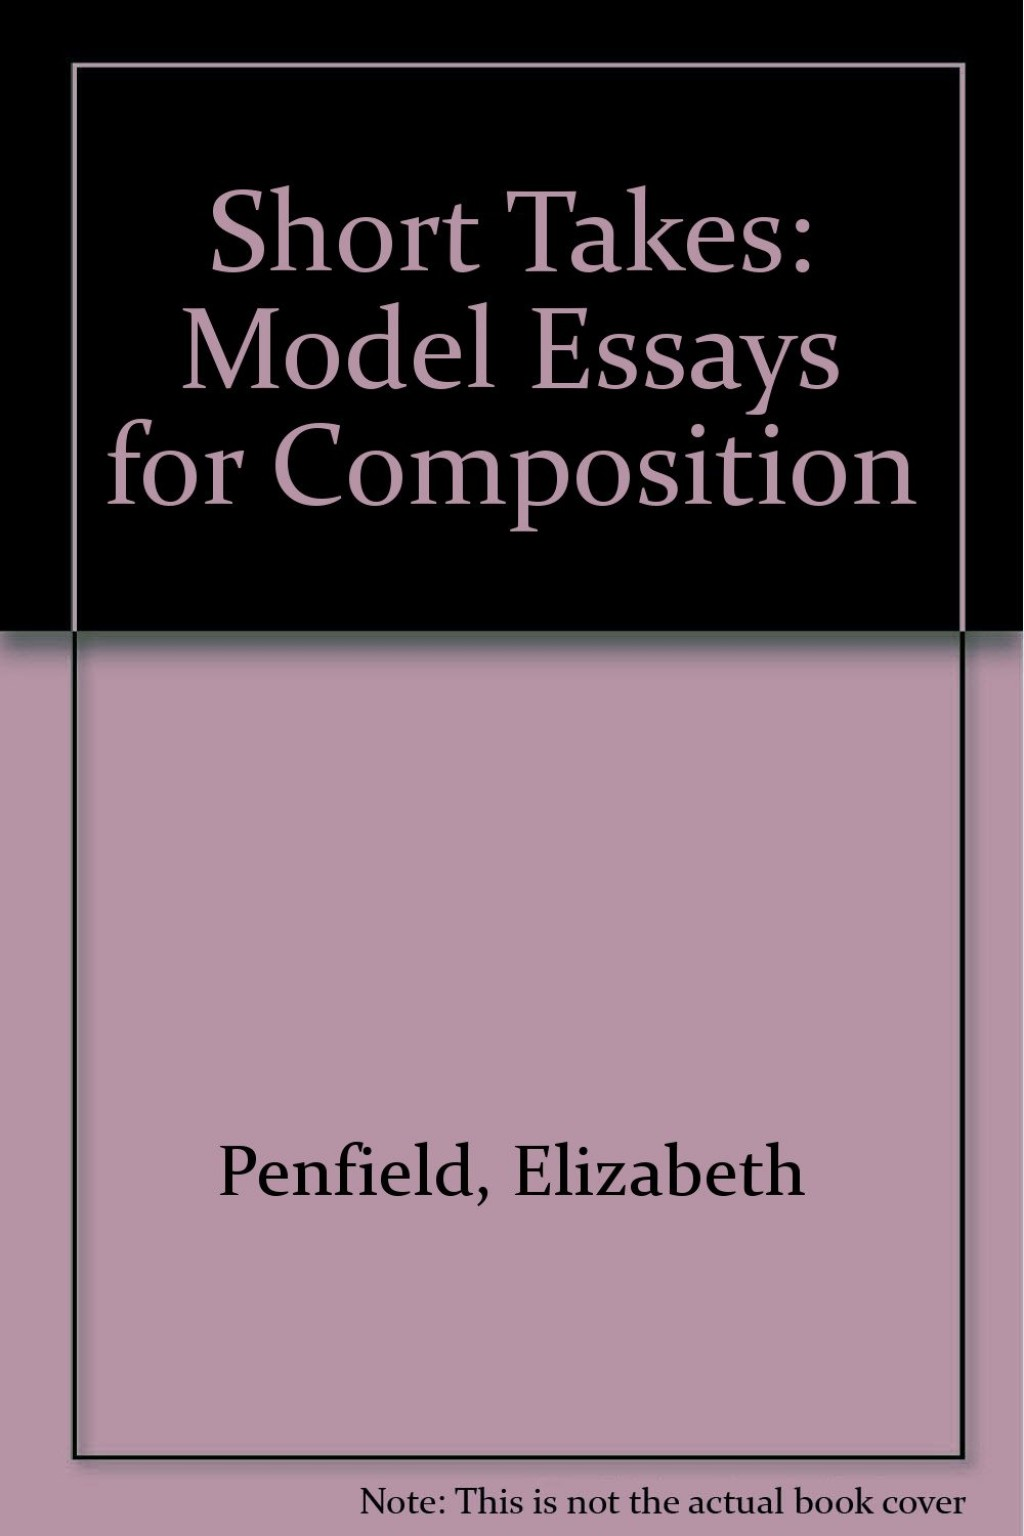 015 Essay Example 61cenqqb8bl Models For Writers Short Essays Singular Composition 12th Edition 13th Pdf Large